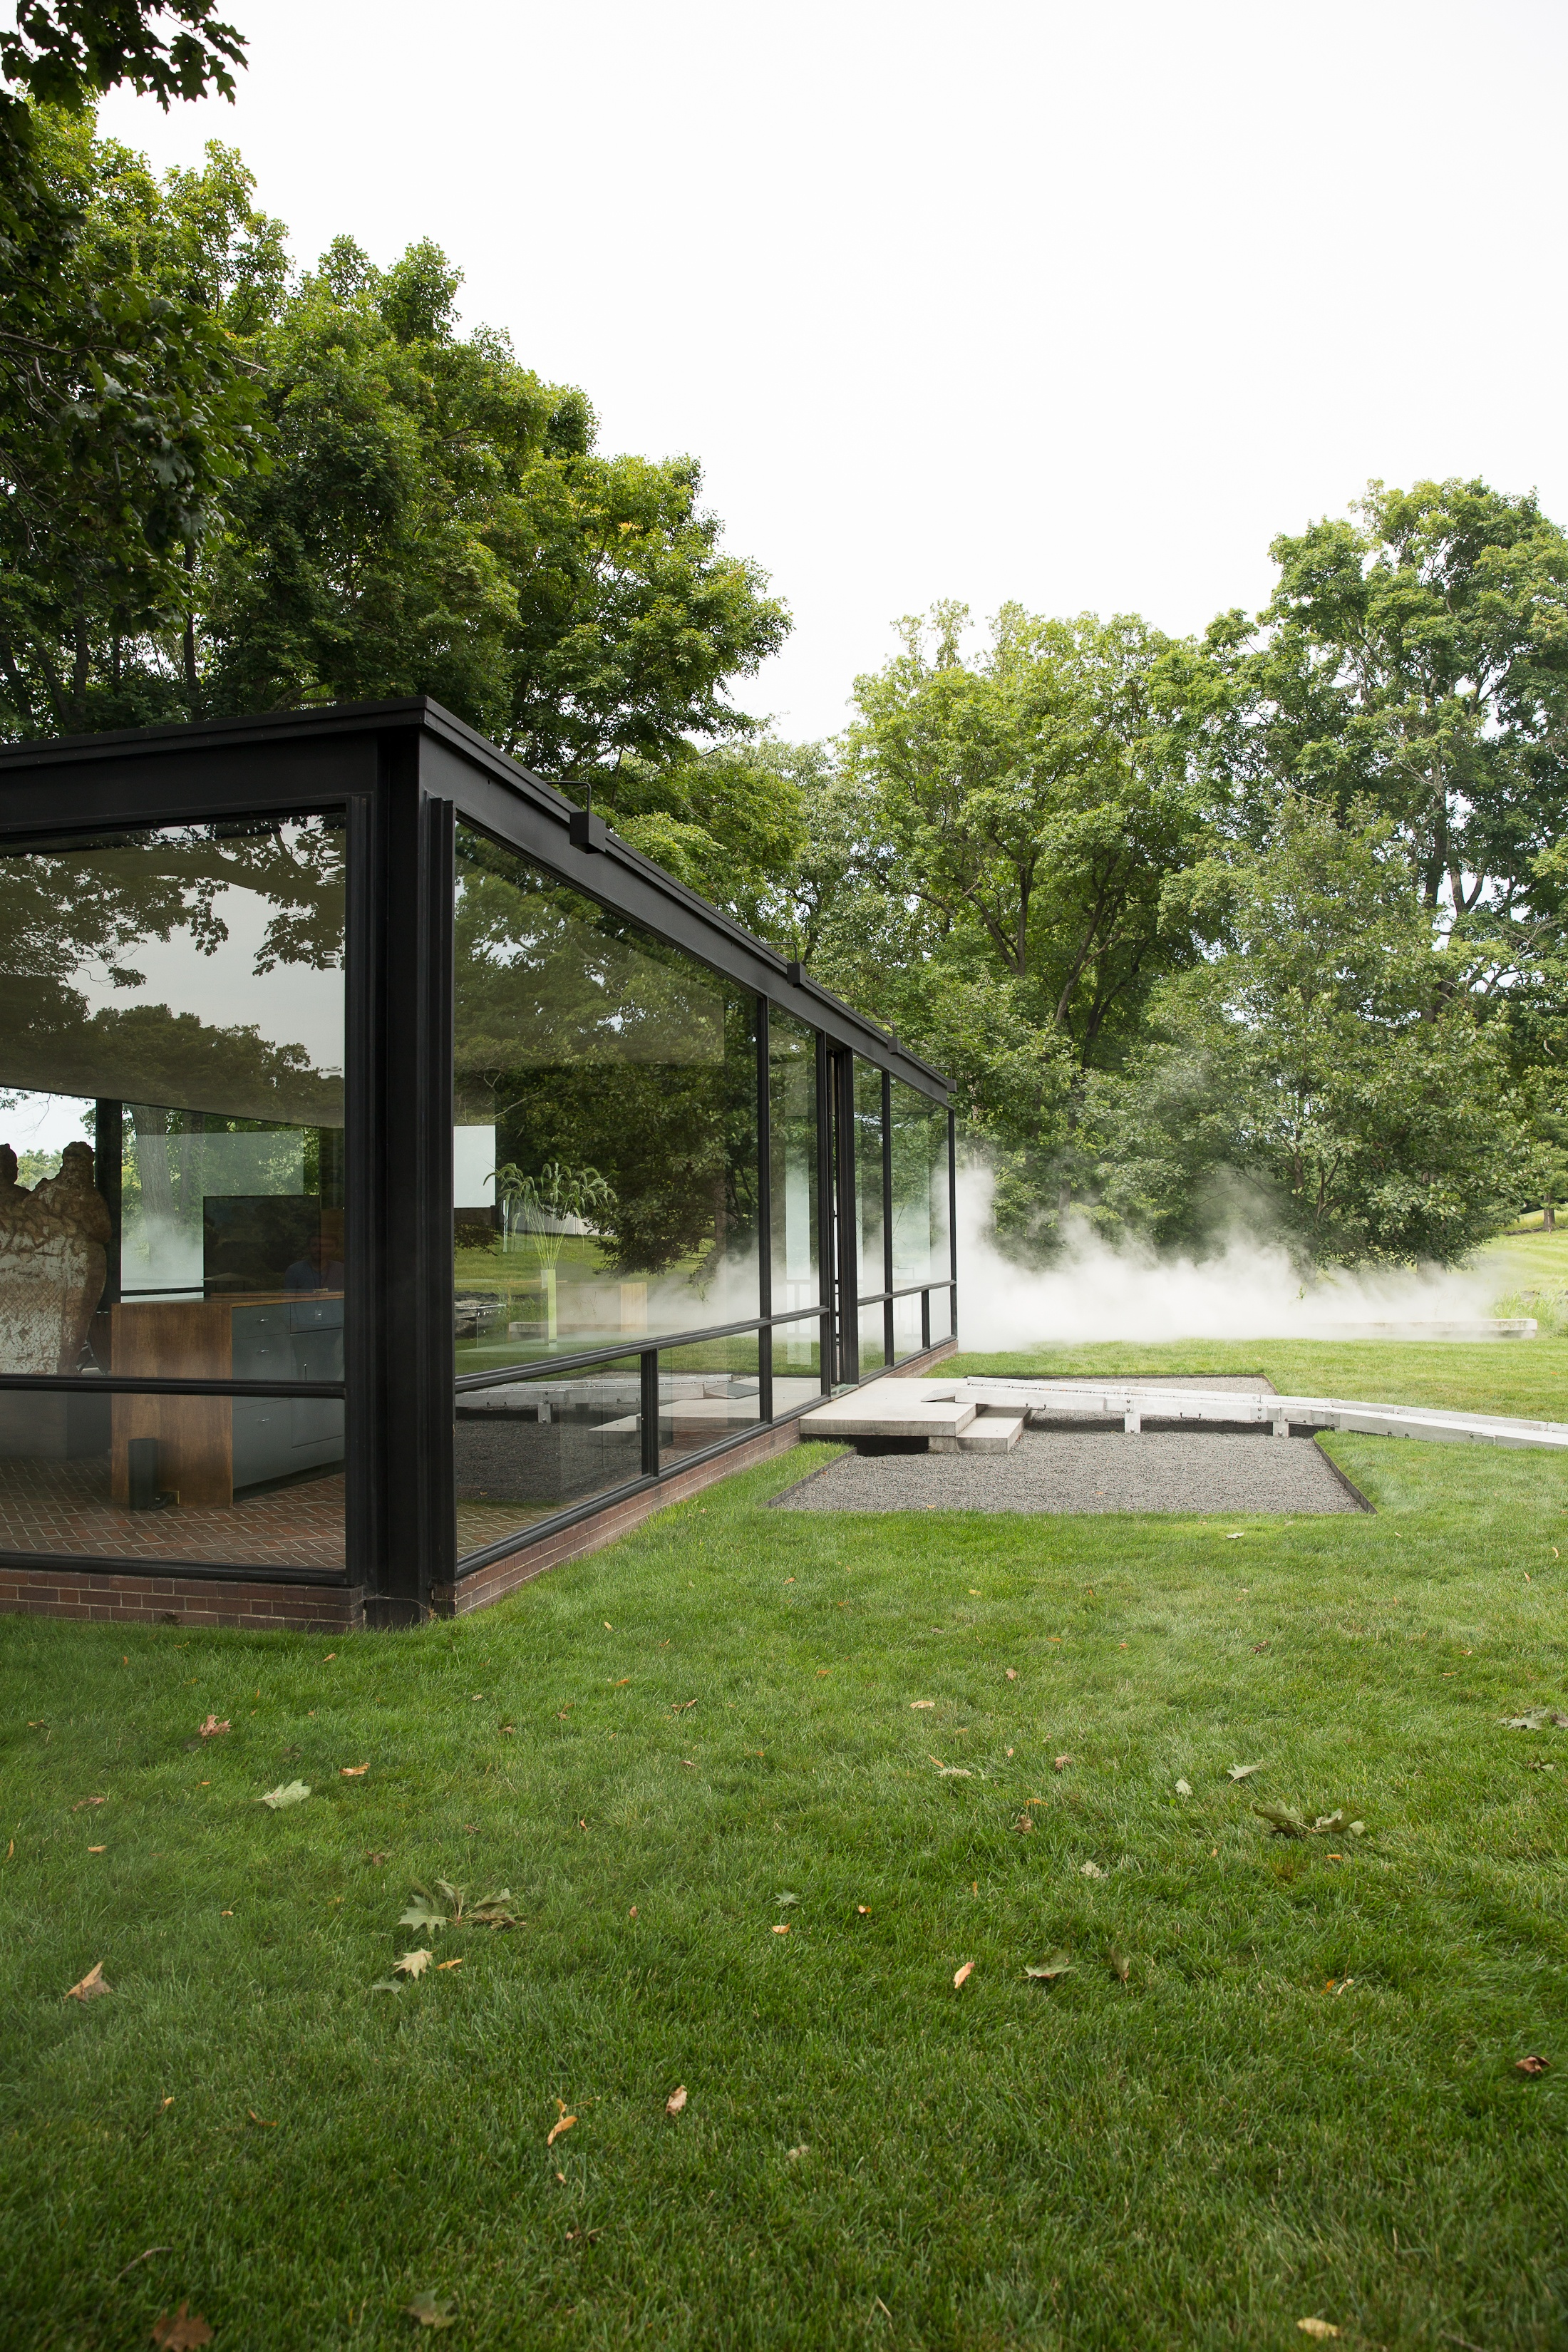 philip johnson the glass house new canaan fujiko nakaya fog exhibition photo shershegoes.com18-2